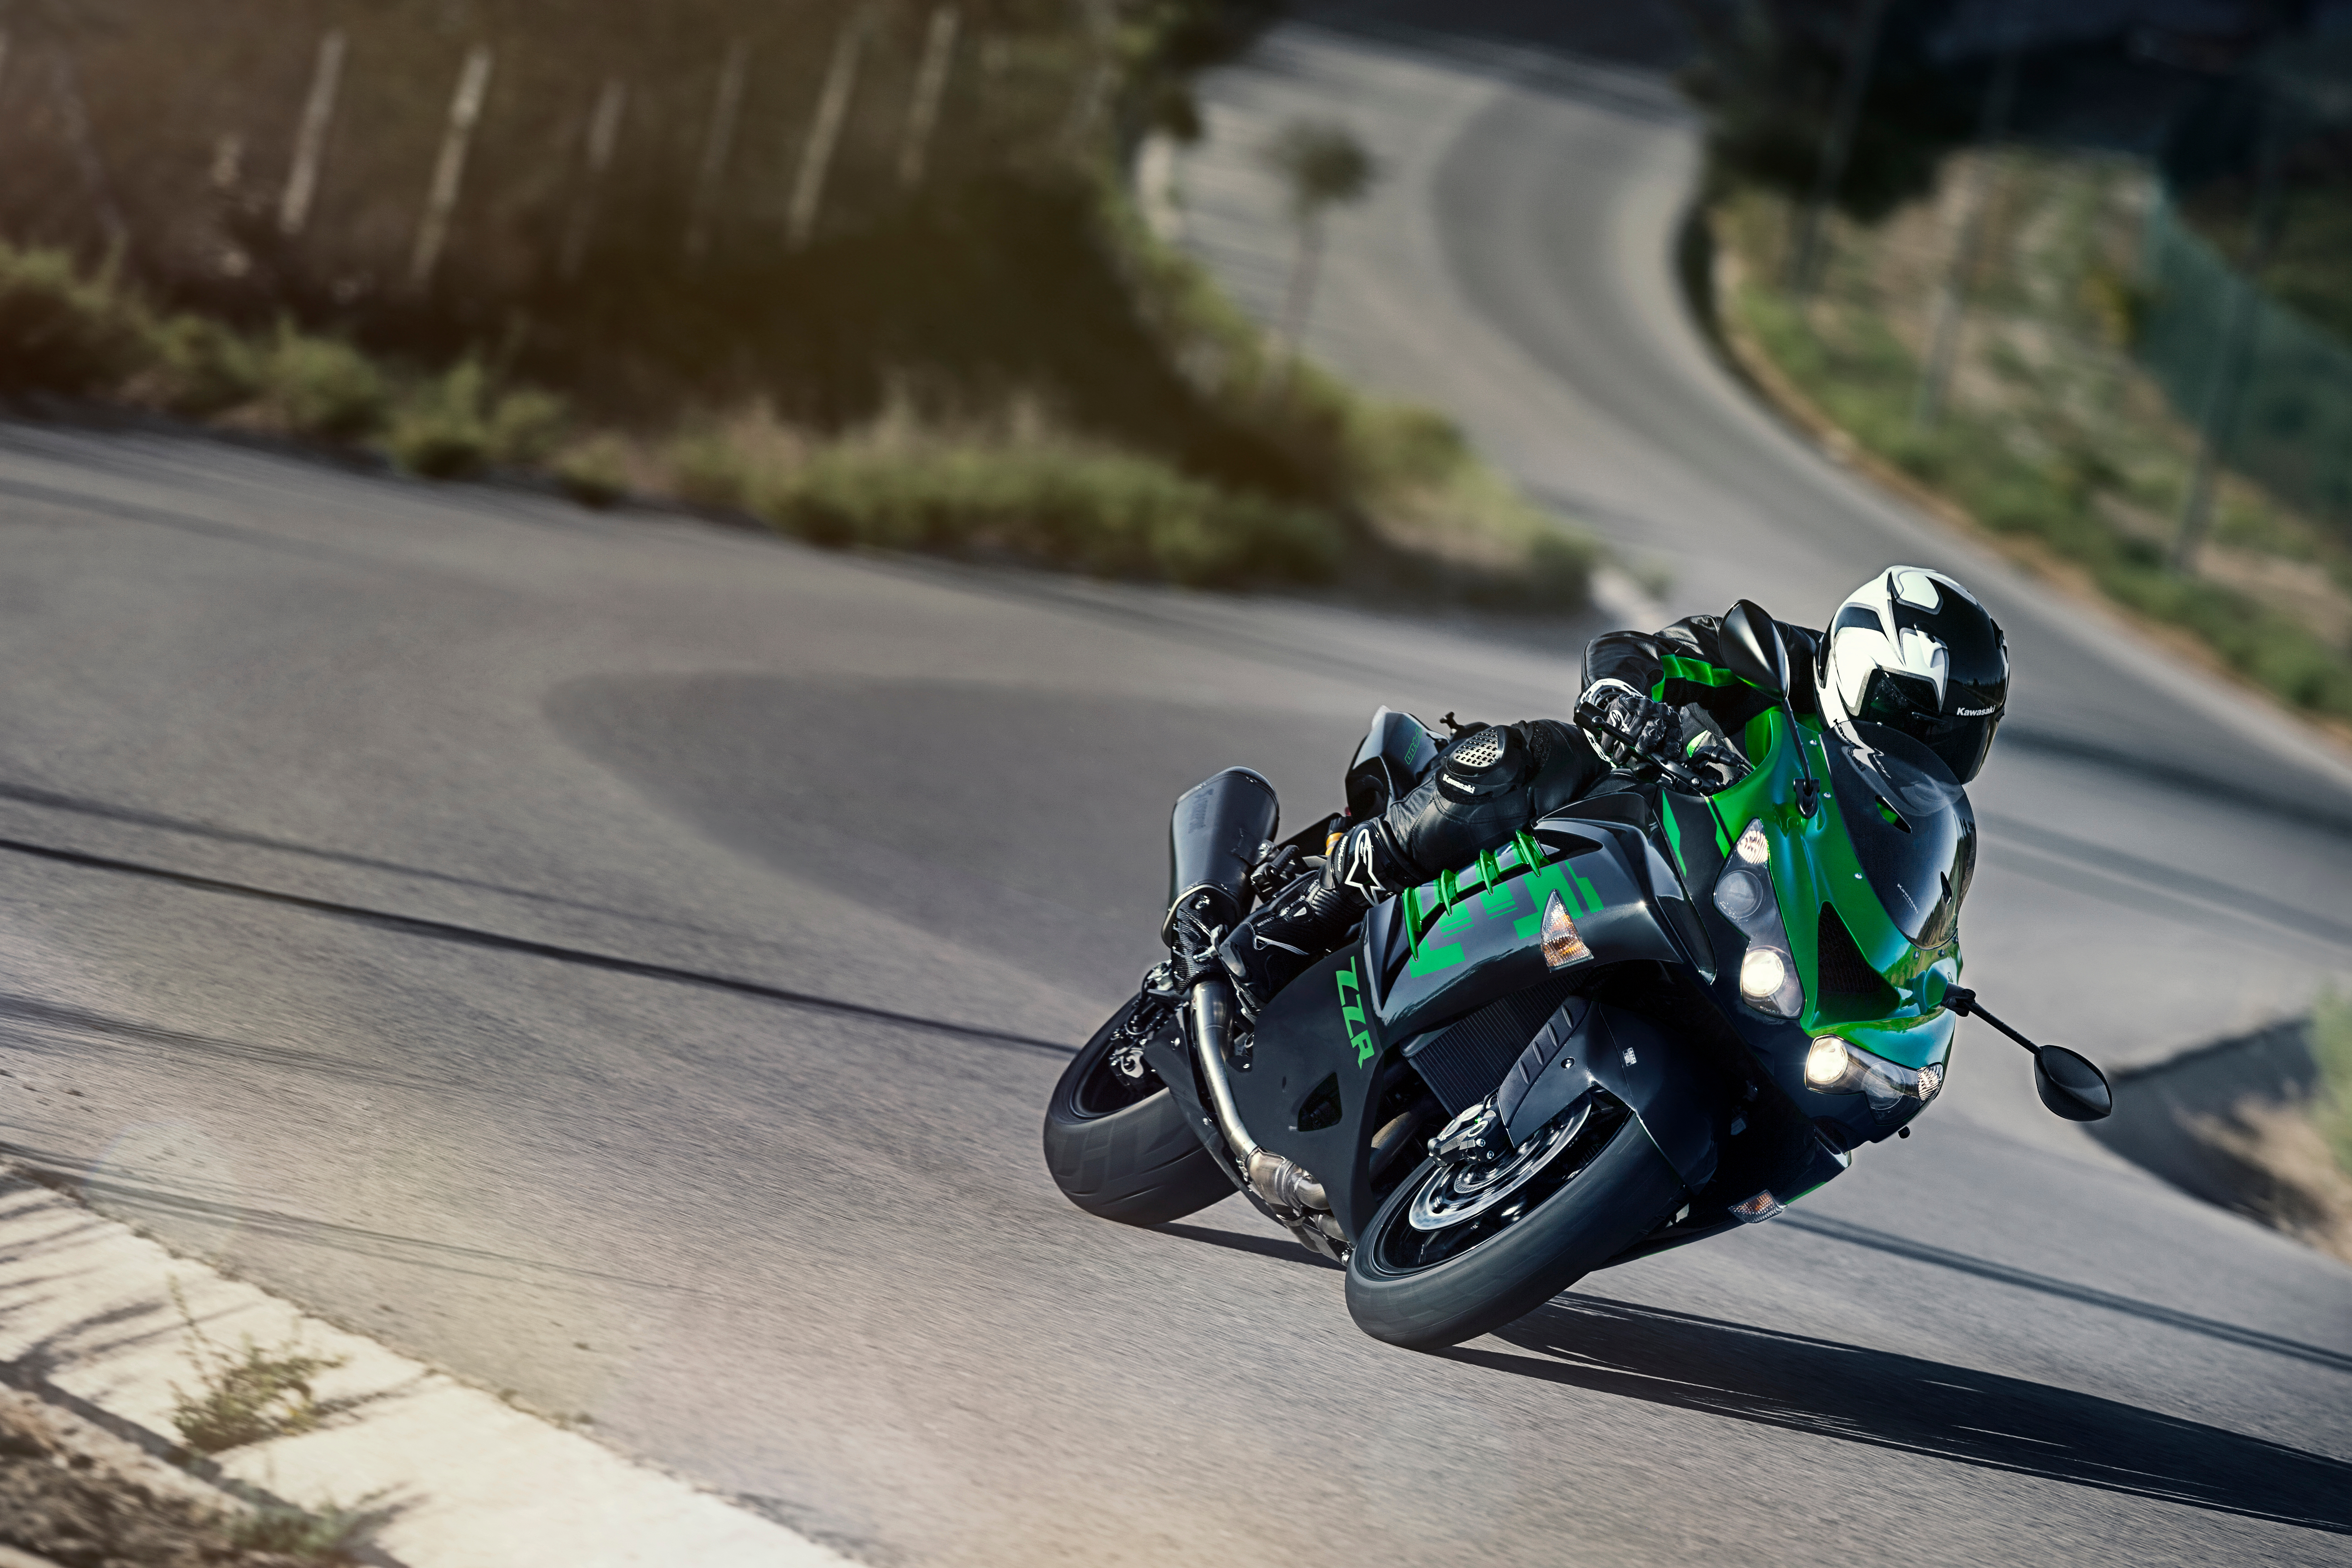 There are few bikes that display the explosive excitement of a petrol motor as well as the Kawasaki ZZR1400 does